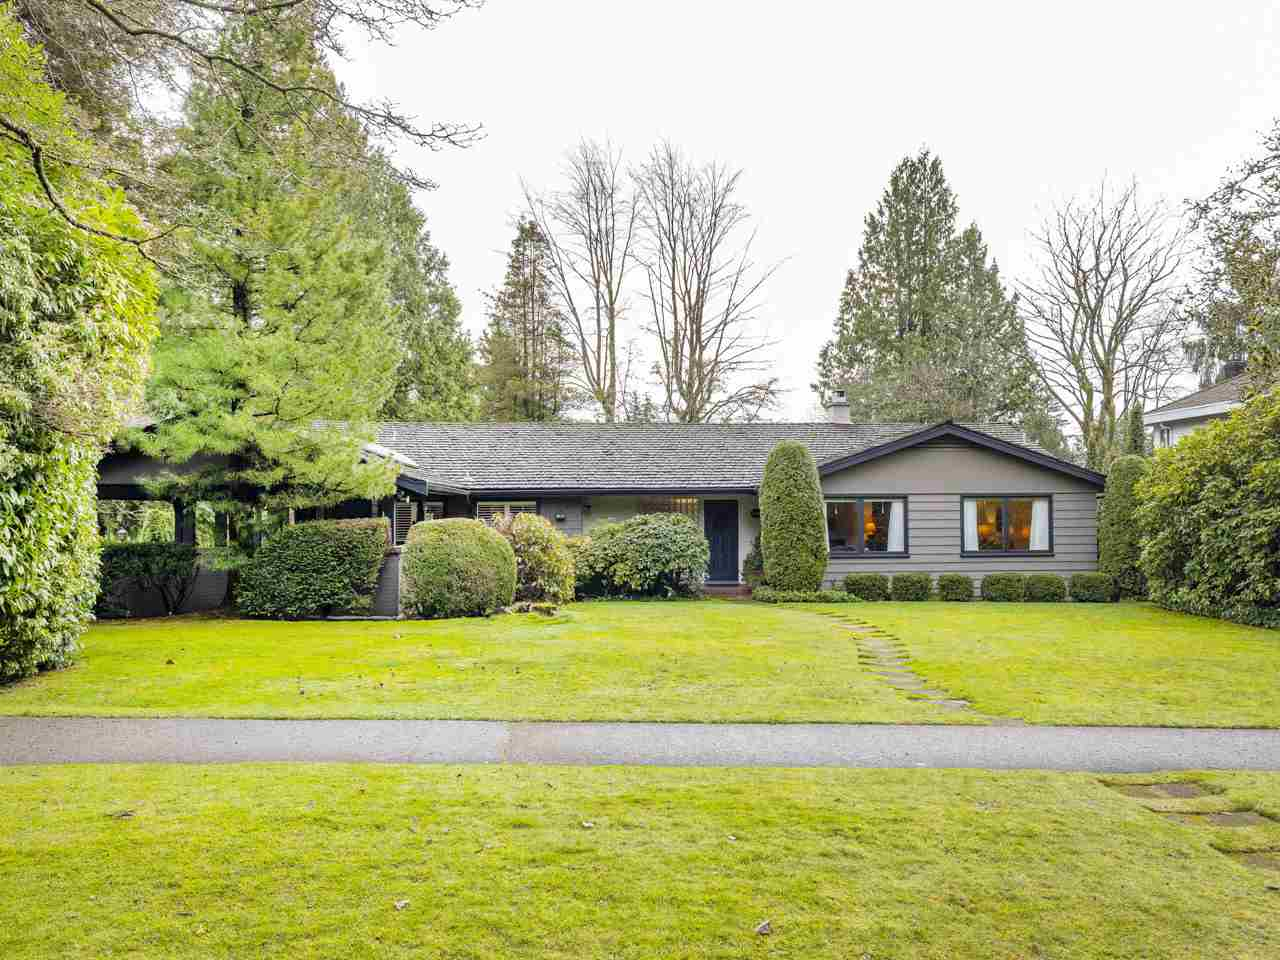 1308 W 54TH AVENUE - South Granville House/Single Family for sale, 4 Bedrooms (R2528346) - #1